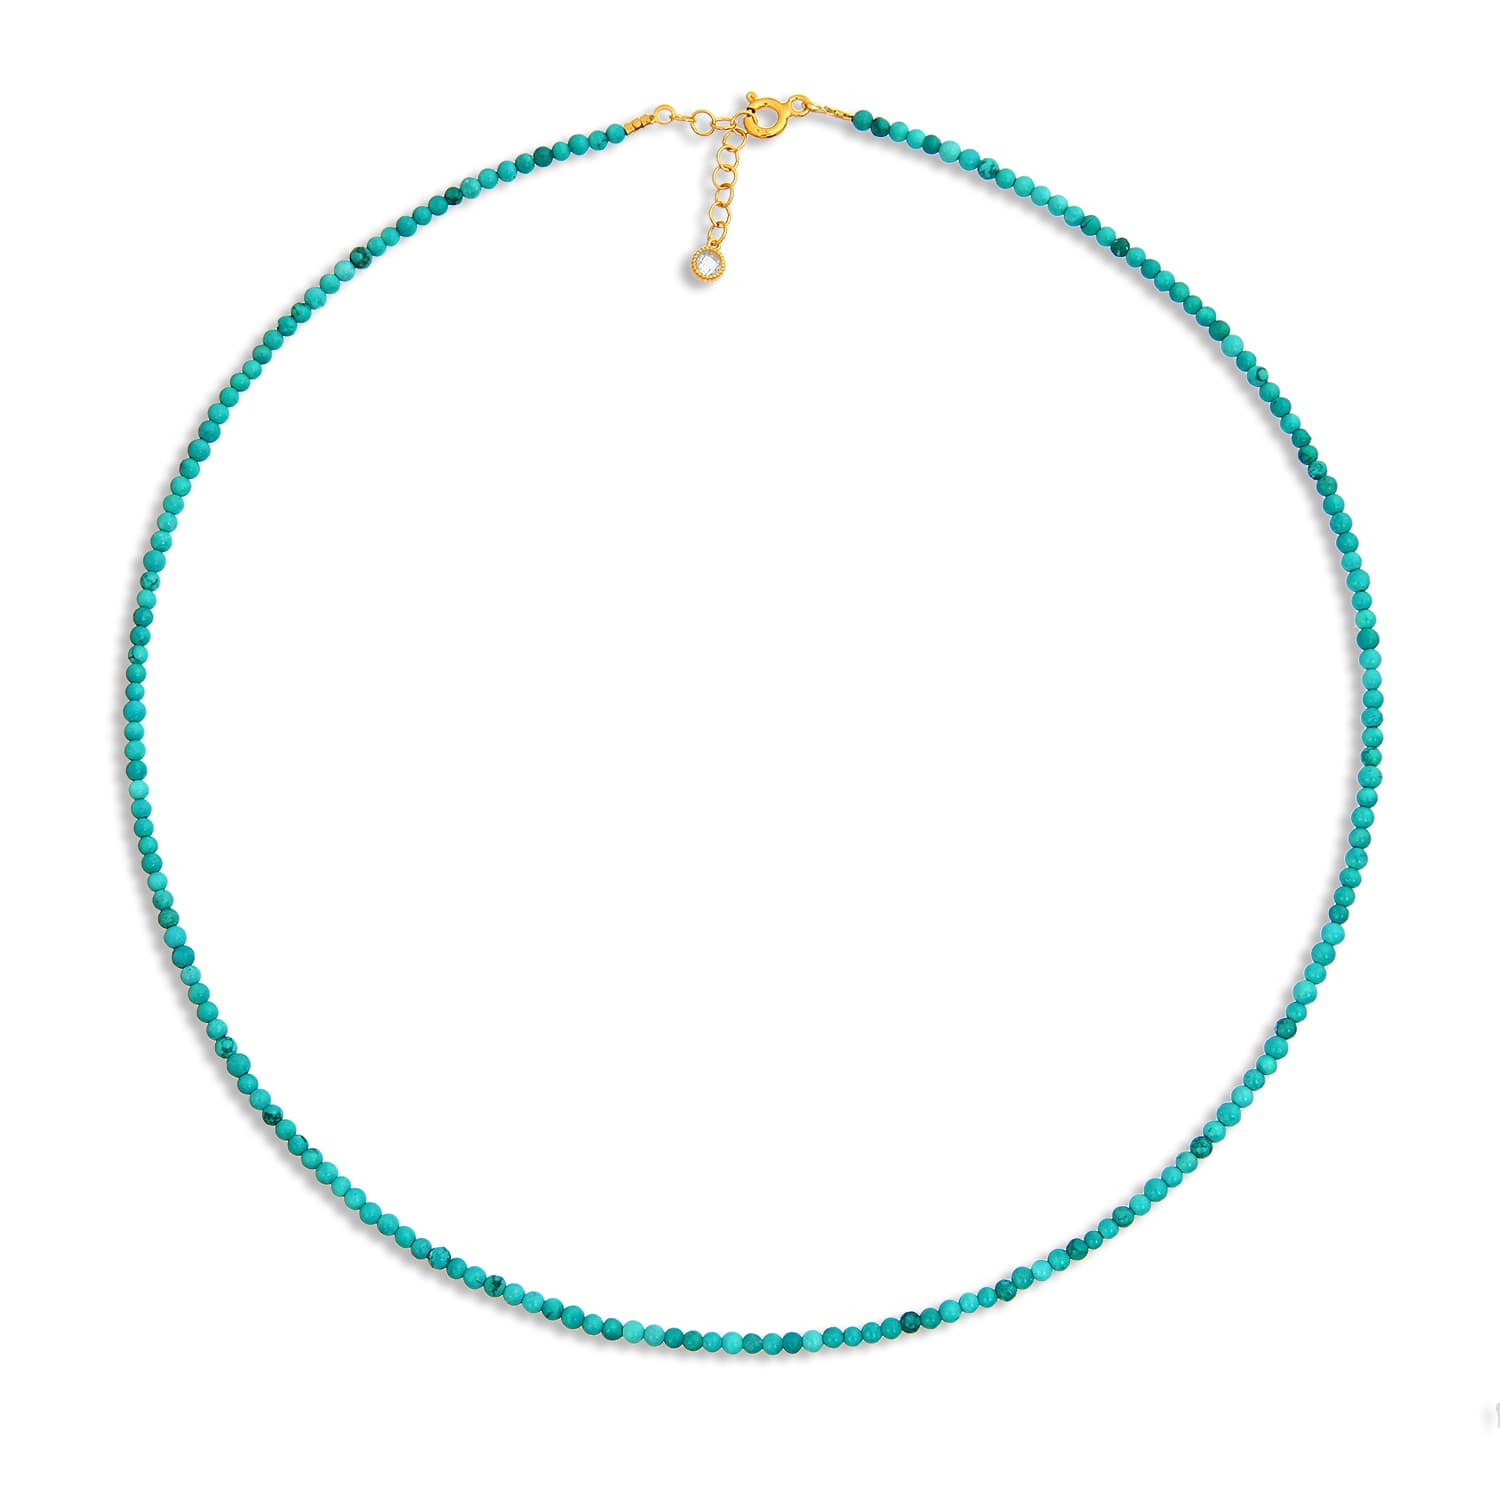 NATURAL TURQUOISE STONE SEQUENCE NECKLACE